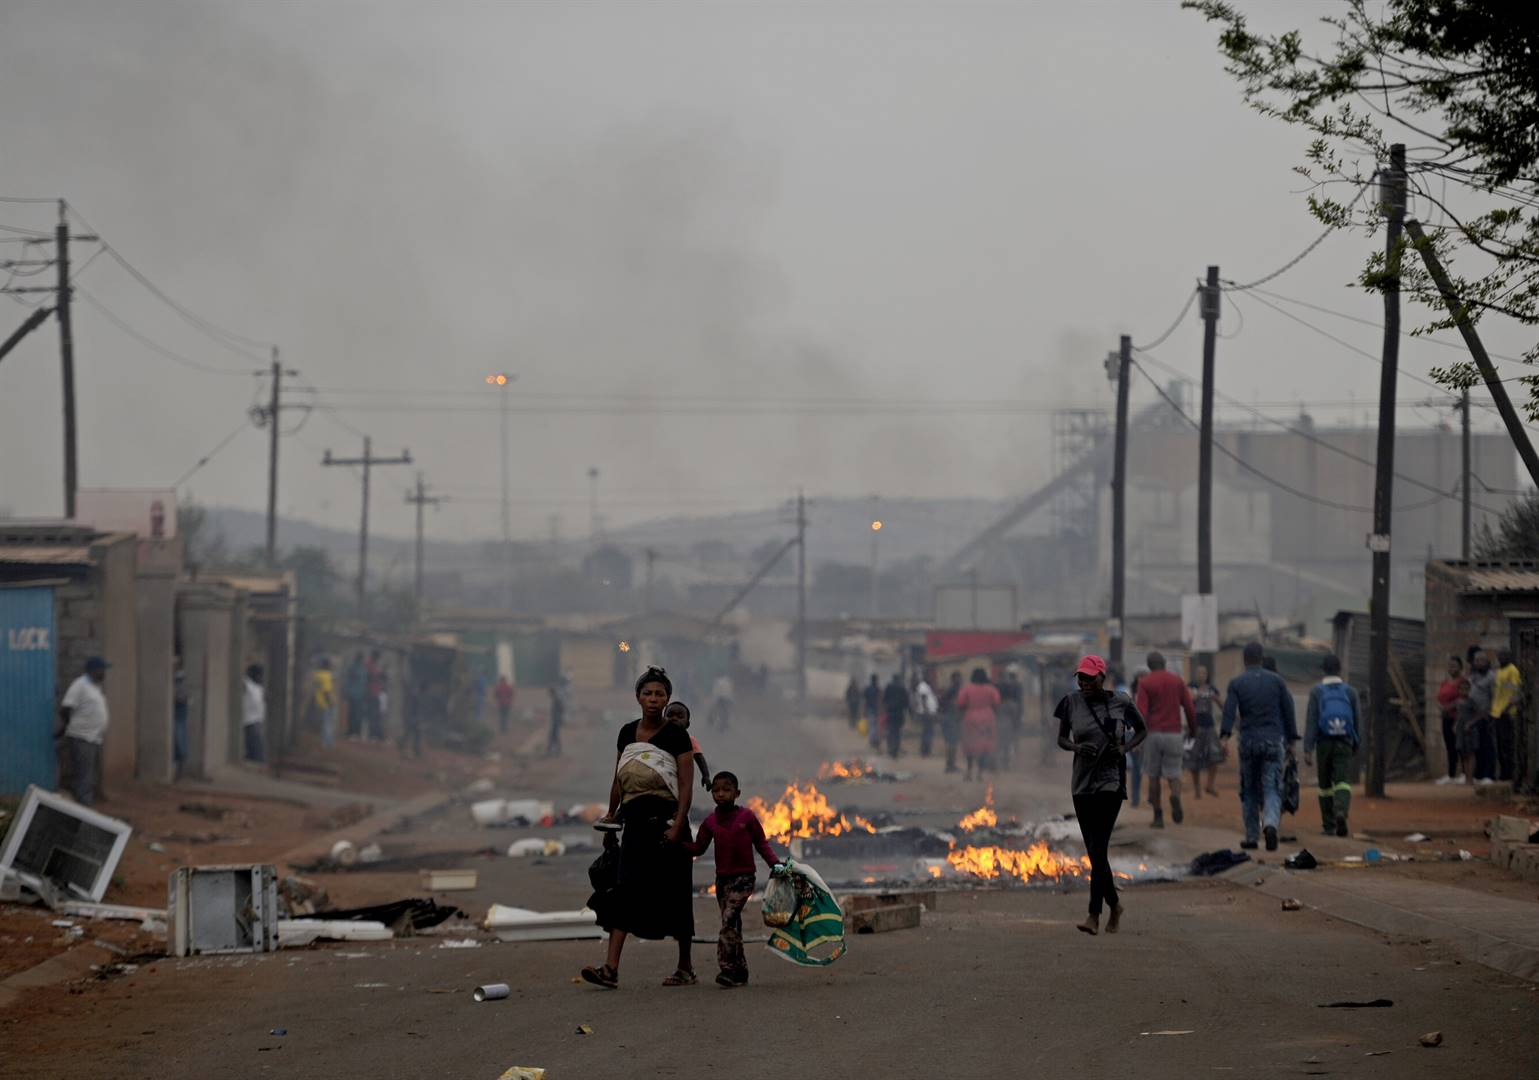 Property belonging to foreign nationals goes up in smoke in Katlehong Zone 3, Mandela section, as community members turn against them. Picture: Tebogo Letsie/City Press